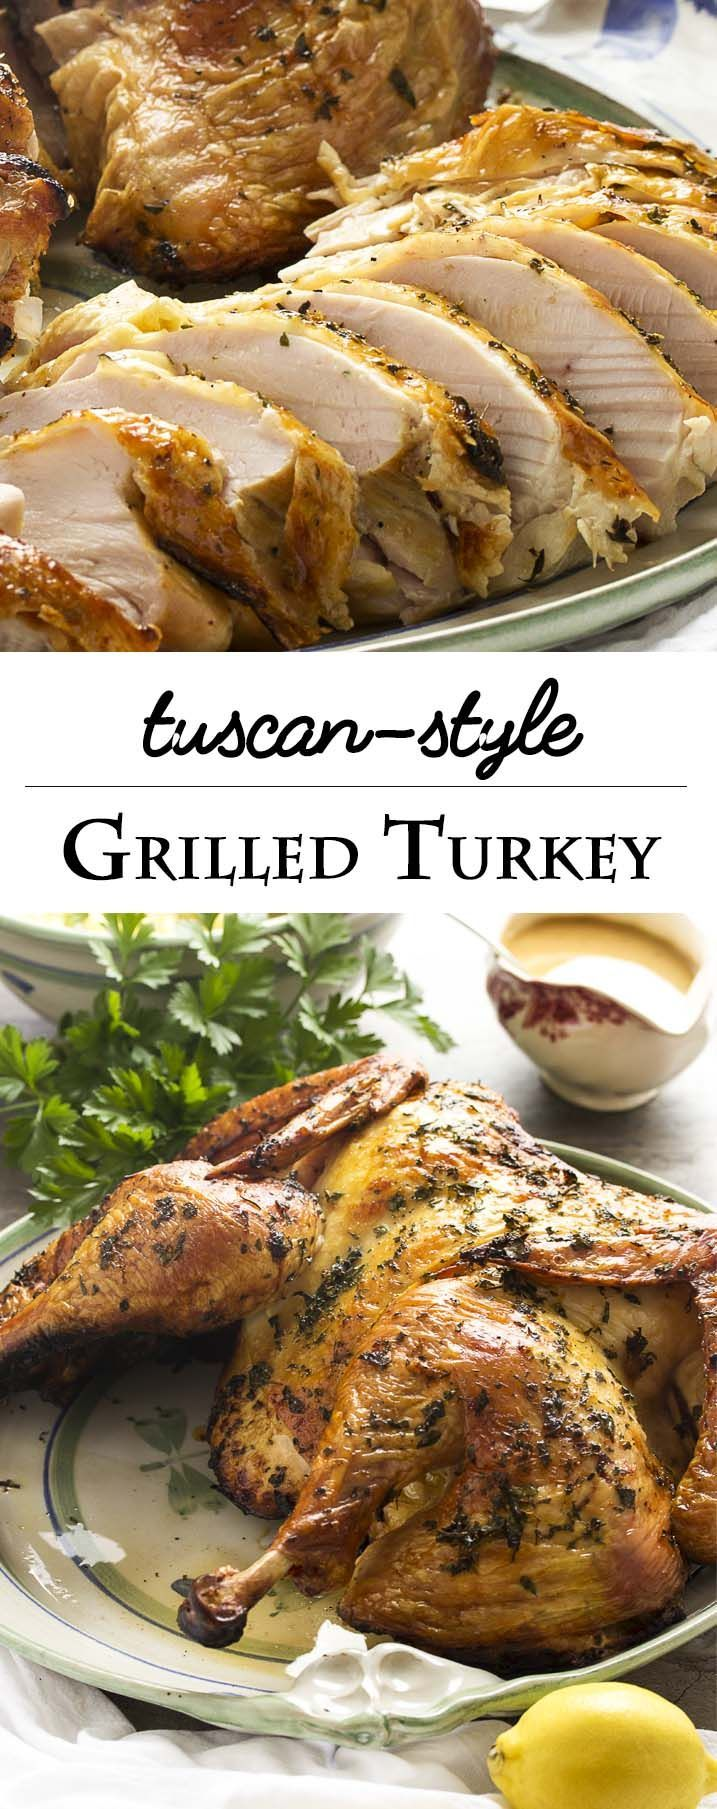 Grill your turkey this year! Tuscan grilled turkey is rubbed with rosemary and citrus zest, then grilled to golden brown on the outside and juicy on the inside. | http://justalittlebitofbacon.com